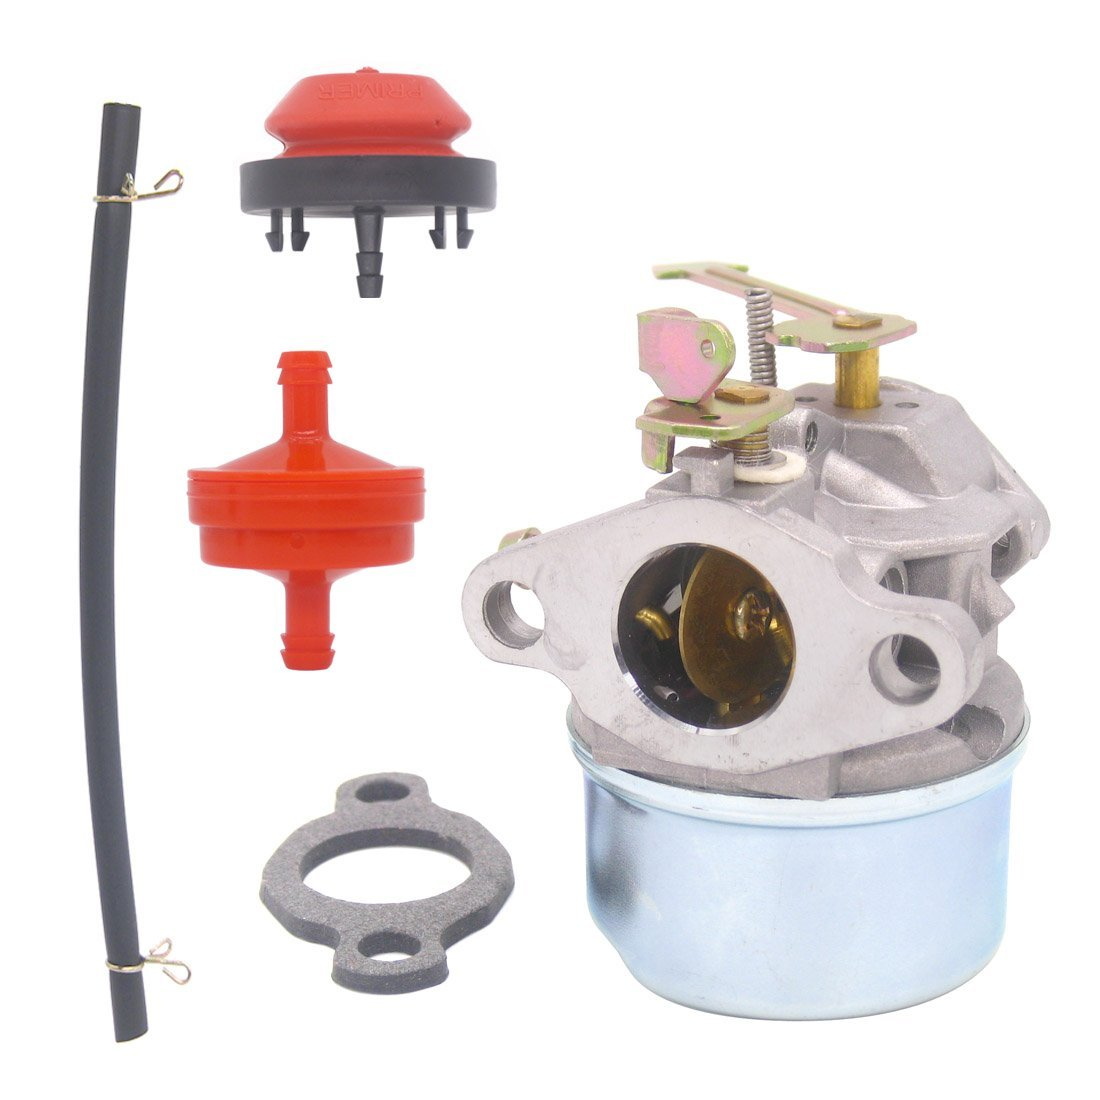 hight resolution of get quotations atoparts carburetor with gasket primer bulb fuel filter fuel line for tecumseh 3hp 2 cycle snow